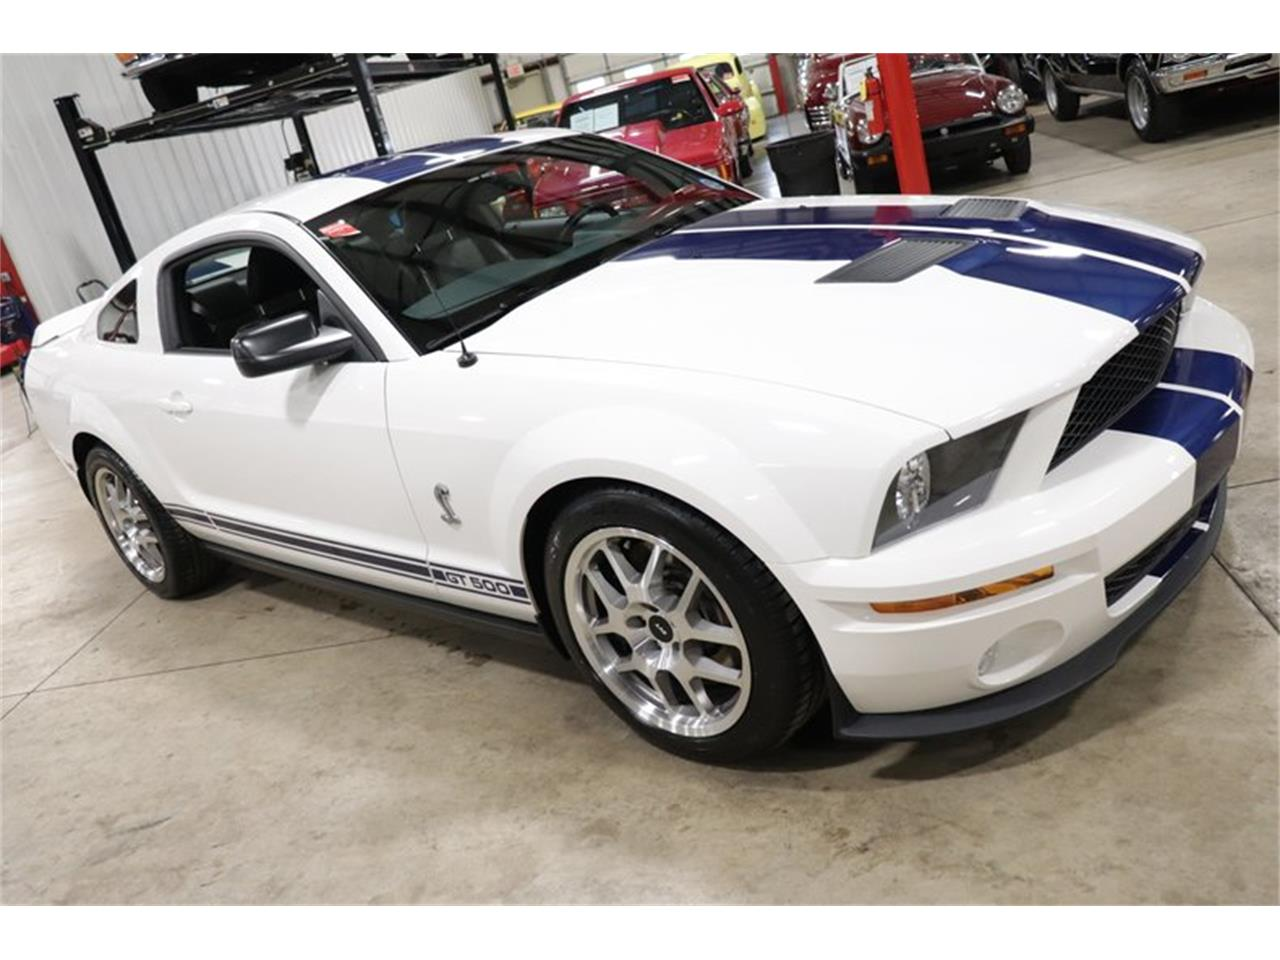 2008 Shelby GT500 for sale in Kentwood, MI – photo 100